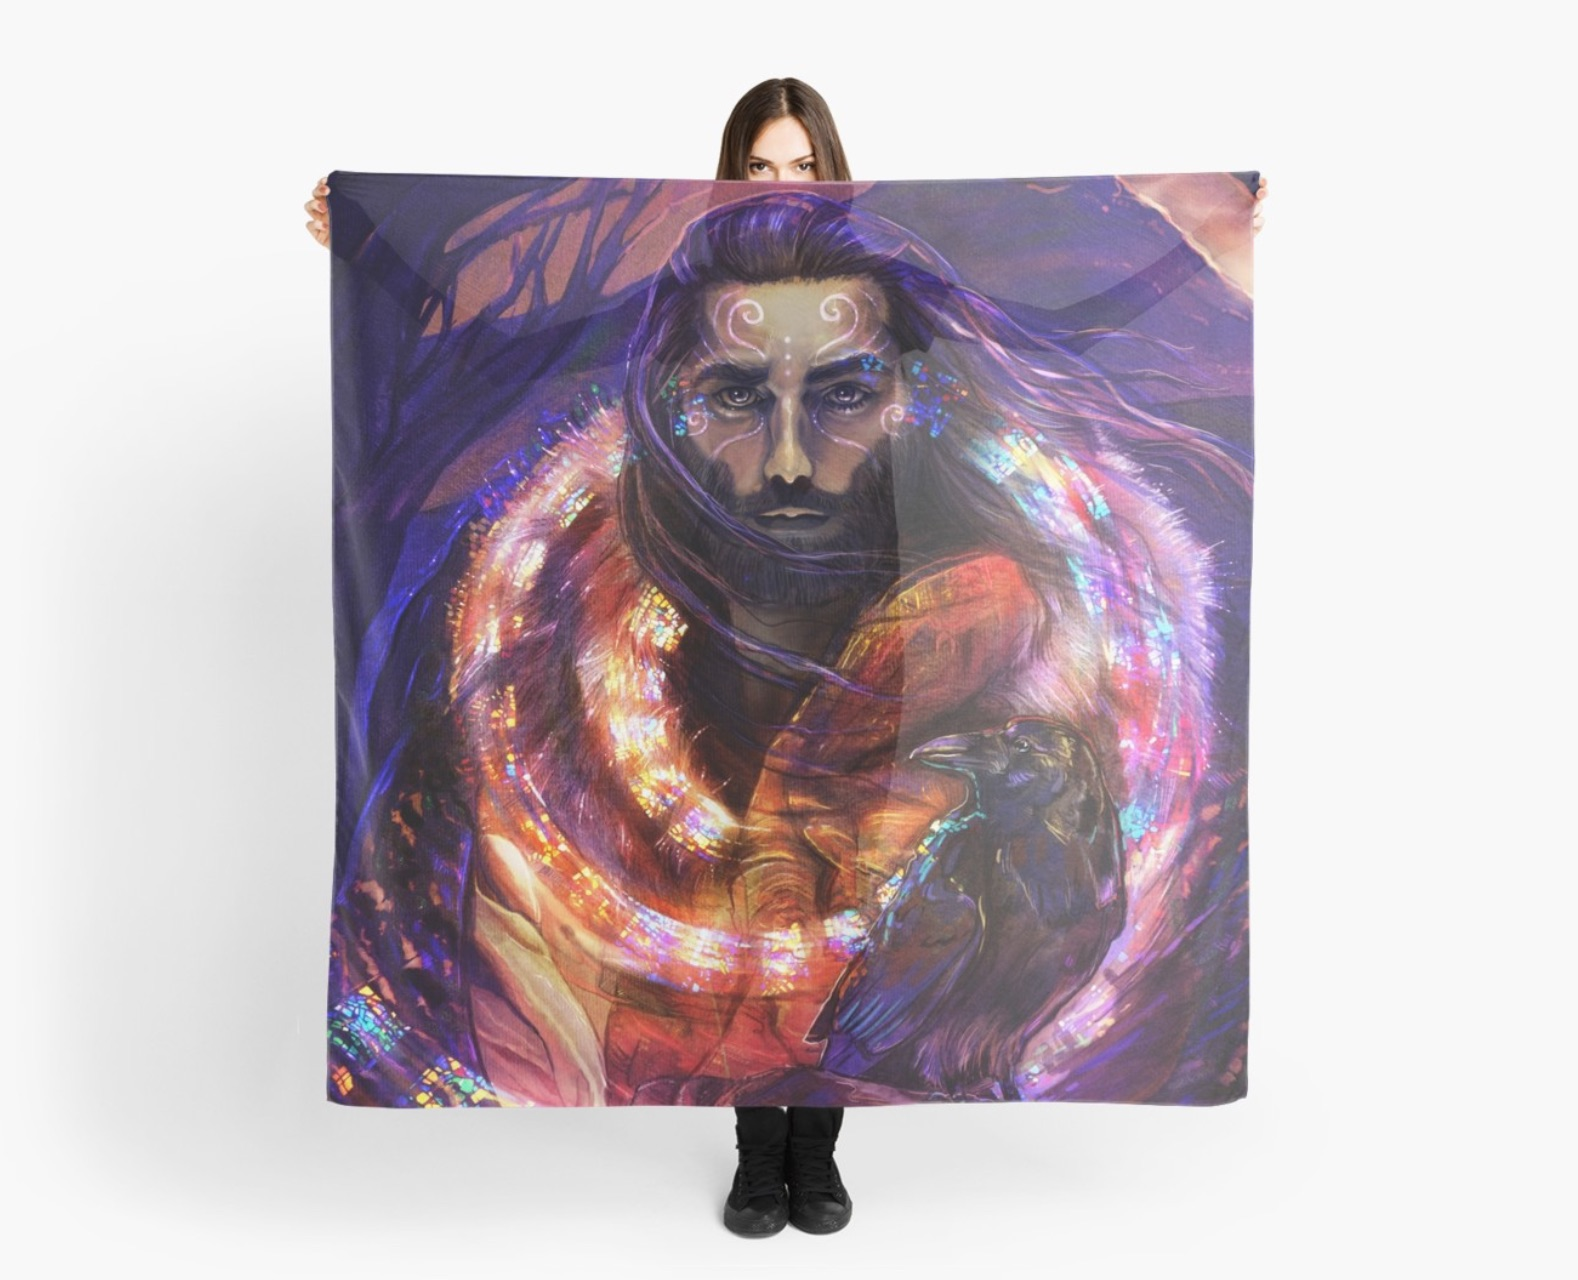 _King_of_the_Fay__Scarves_by_Jezhawk___Redbubble.jpg